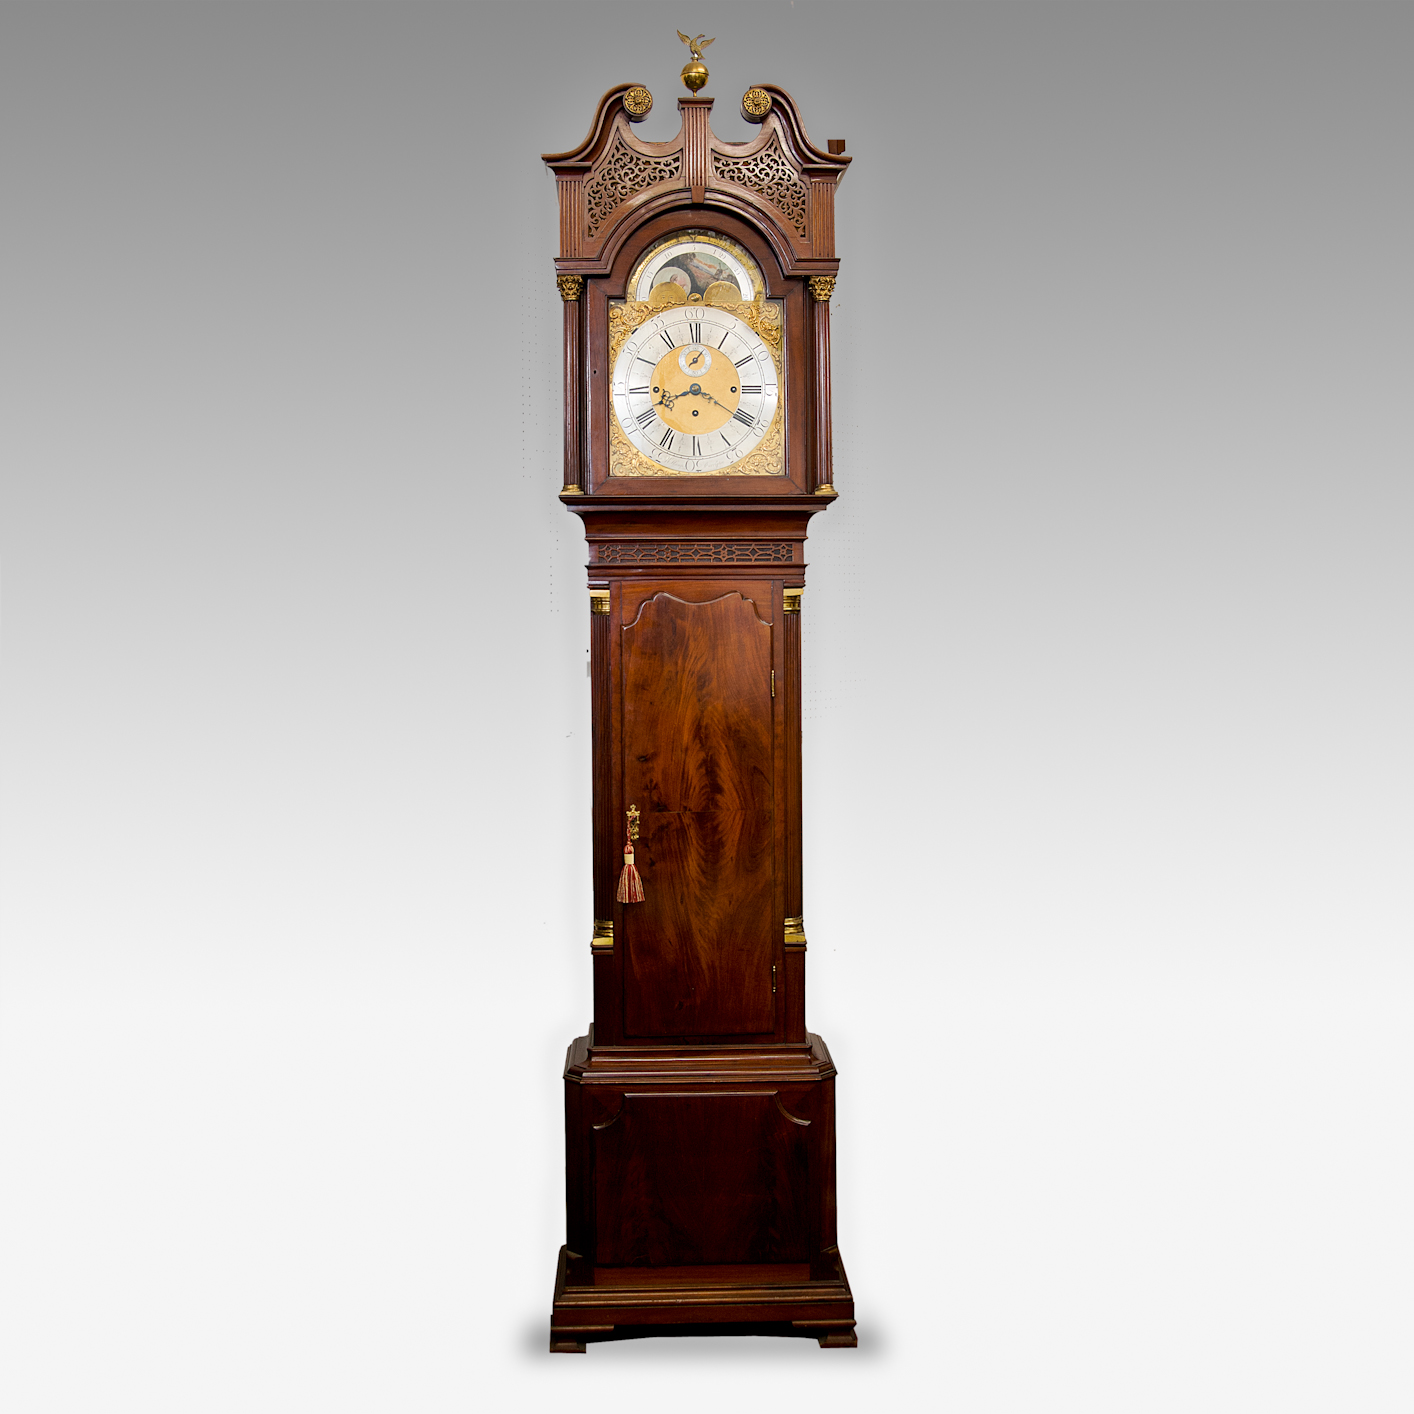 Air Commodore John Chaplin's Grandfather clock